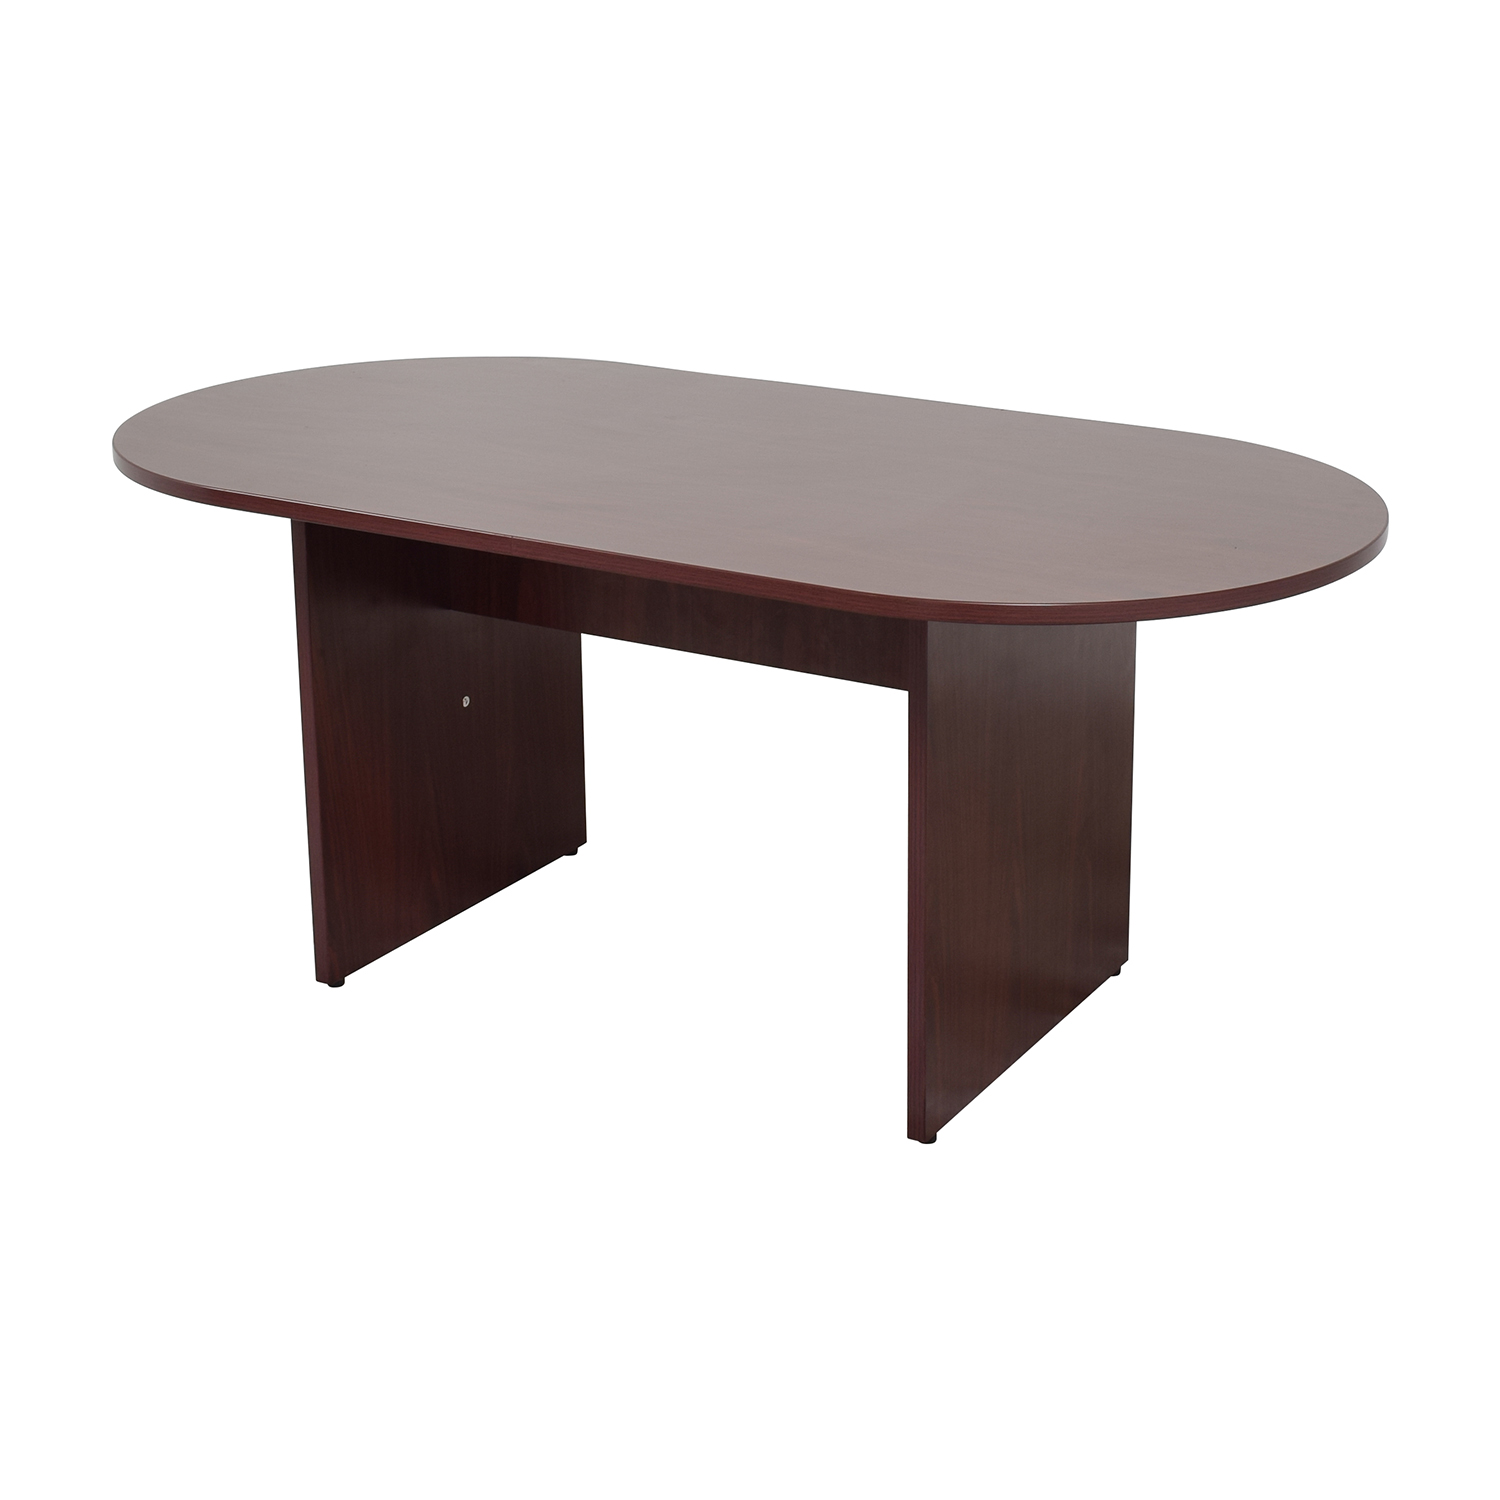 Hon Hon Oval Conference Room Table pa